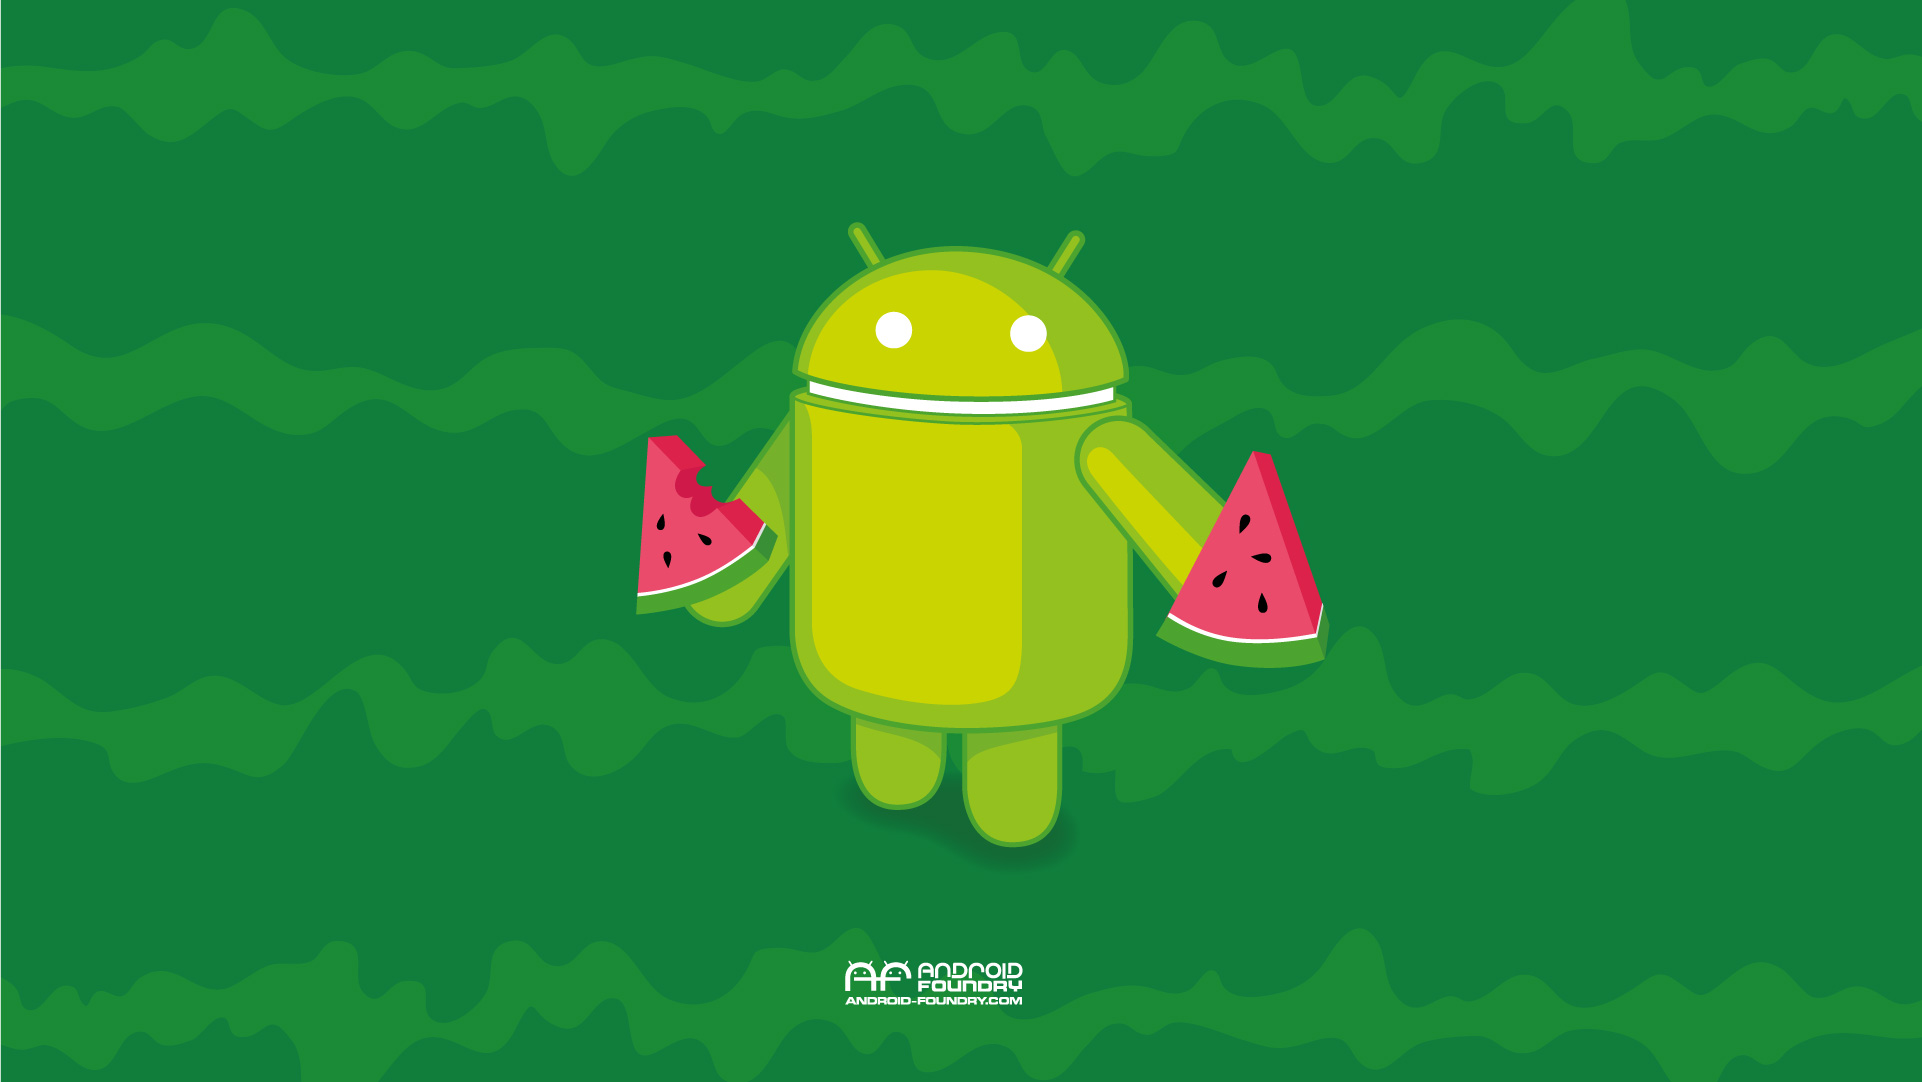 Wallpaper  Watermelon Day!  Android Foundry